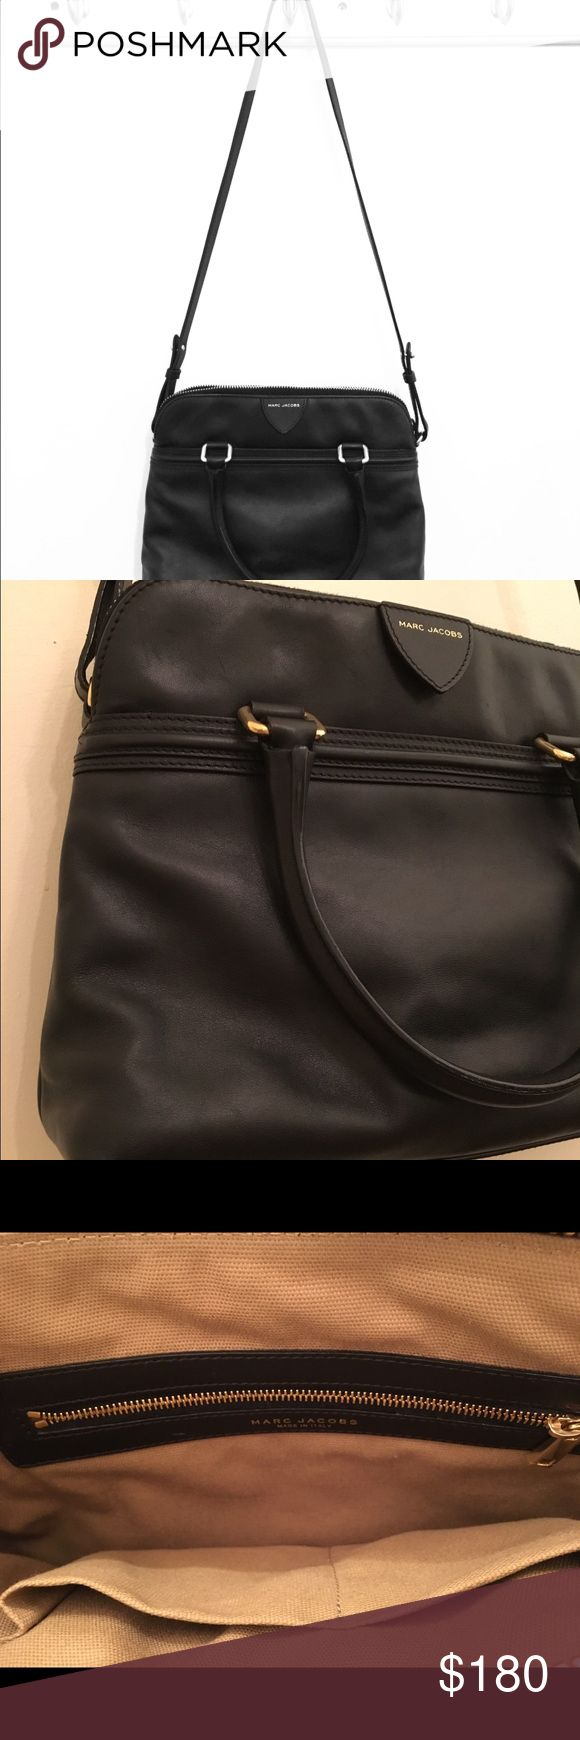 Marc Jacobs Collection Shoulder Bag Nearly-new Marc Jacobs Collection bag. Bought it at Nordstrom on sale a couple of years ago. Fits tablets, most books (minus textbooks), or a very small laptop (not the 13 in MacBook). Light and durable leather Marc Jacobs Bags Shoulder Bags